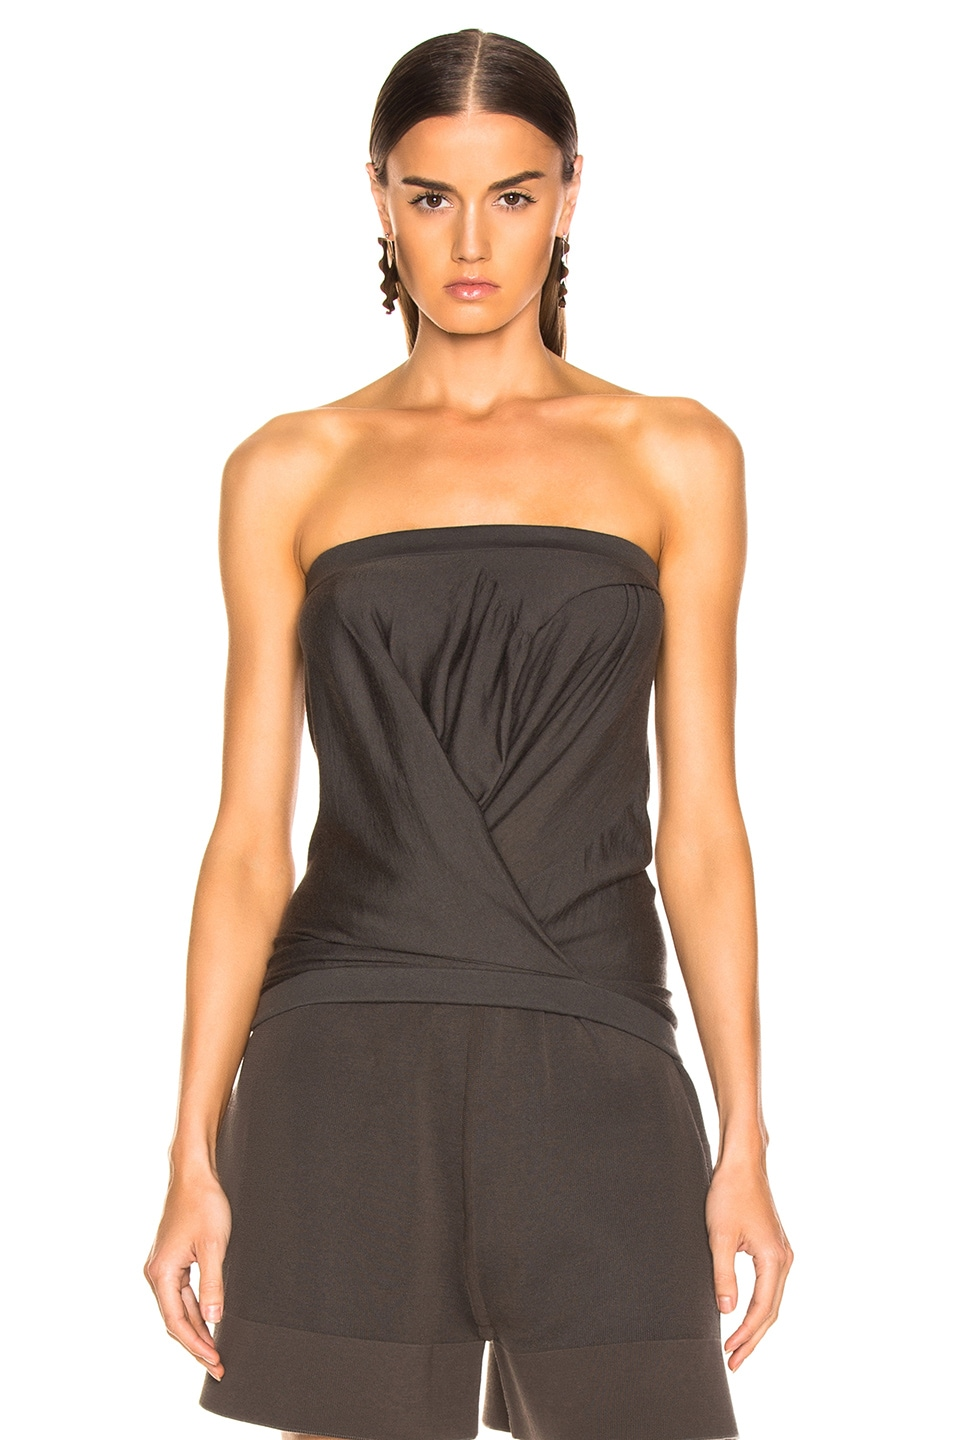 Image 1 of Rick Owens Maglia Bustier Top in Dark dust